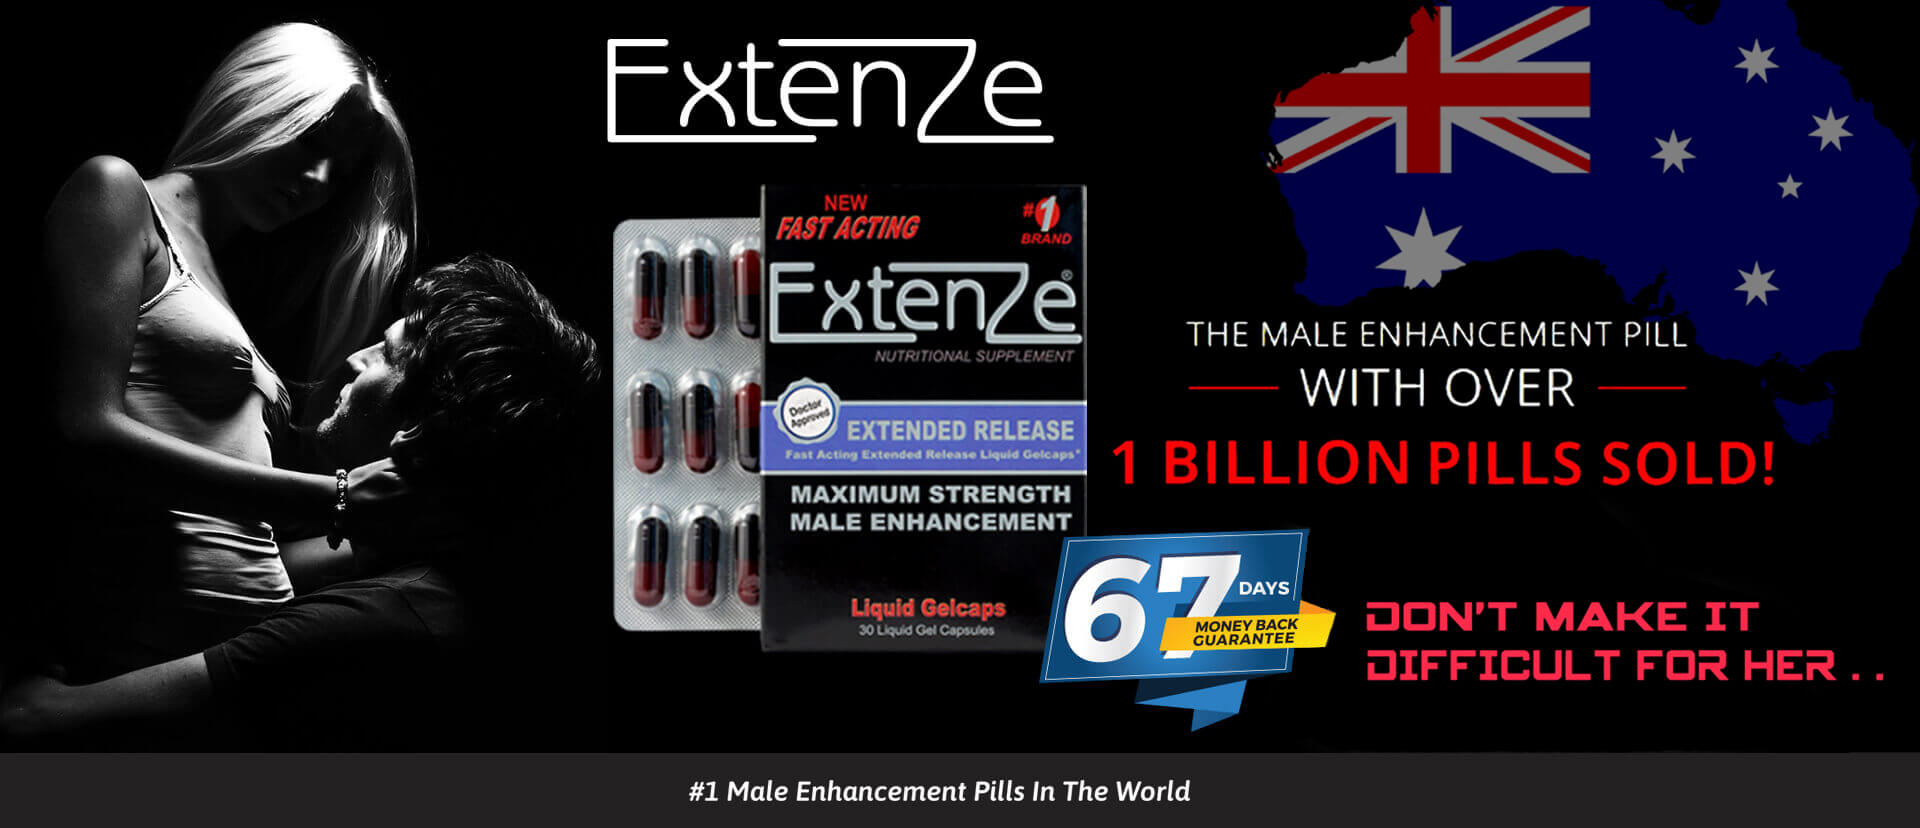 Extenze coupons military  2020